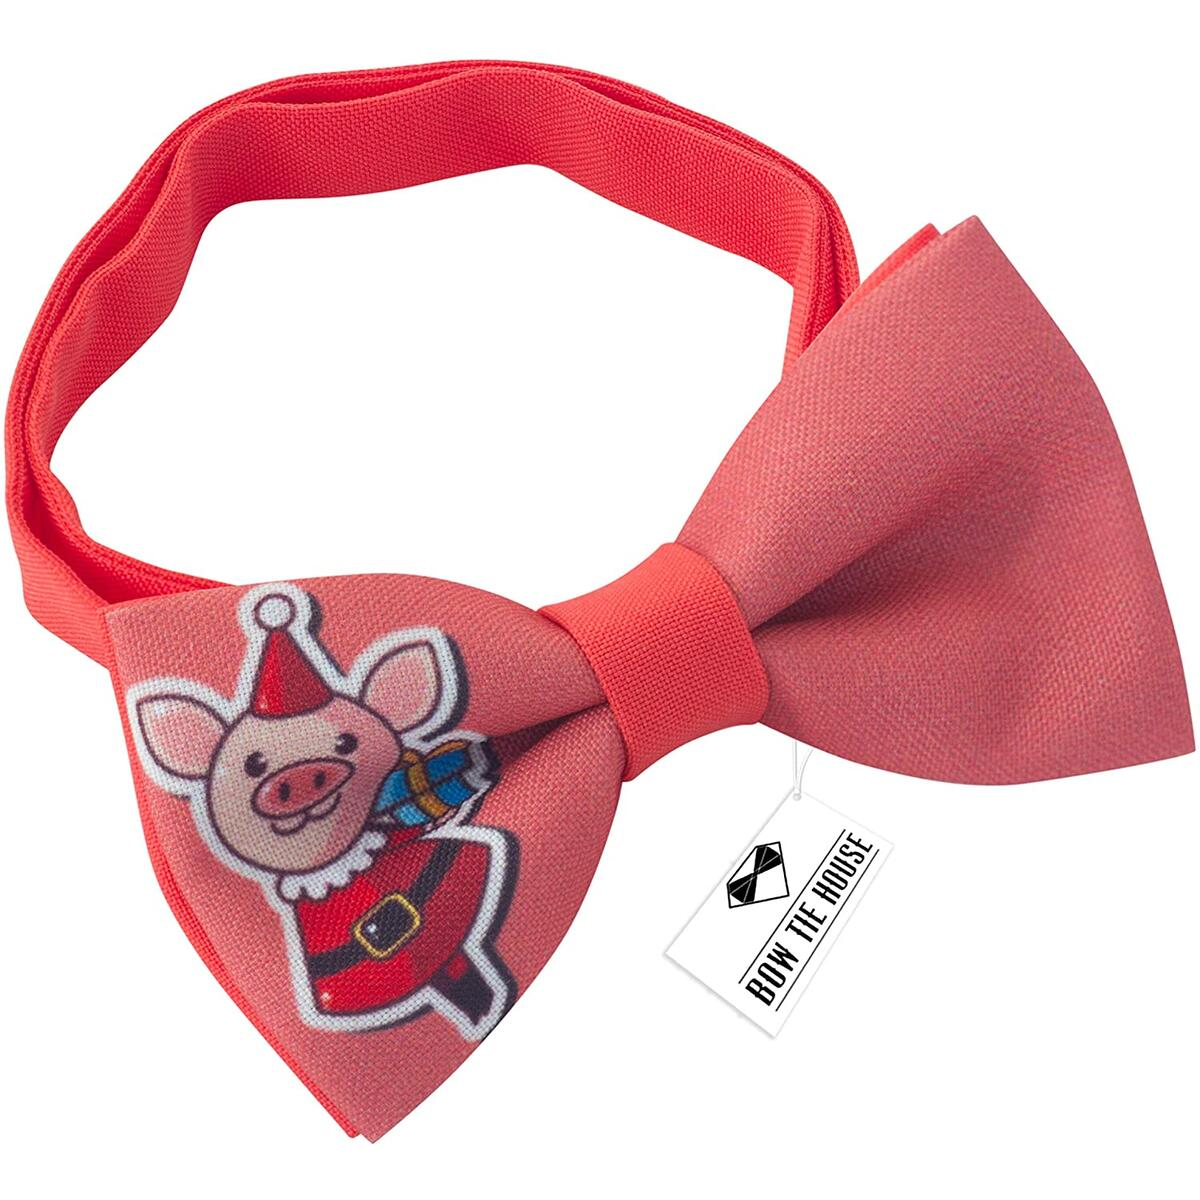 New Year Christmas bow tie pattern pre-tied, by Bow Tie House (Medium, Red Pig)…